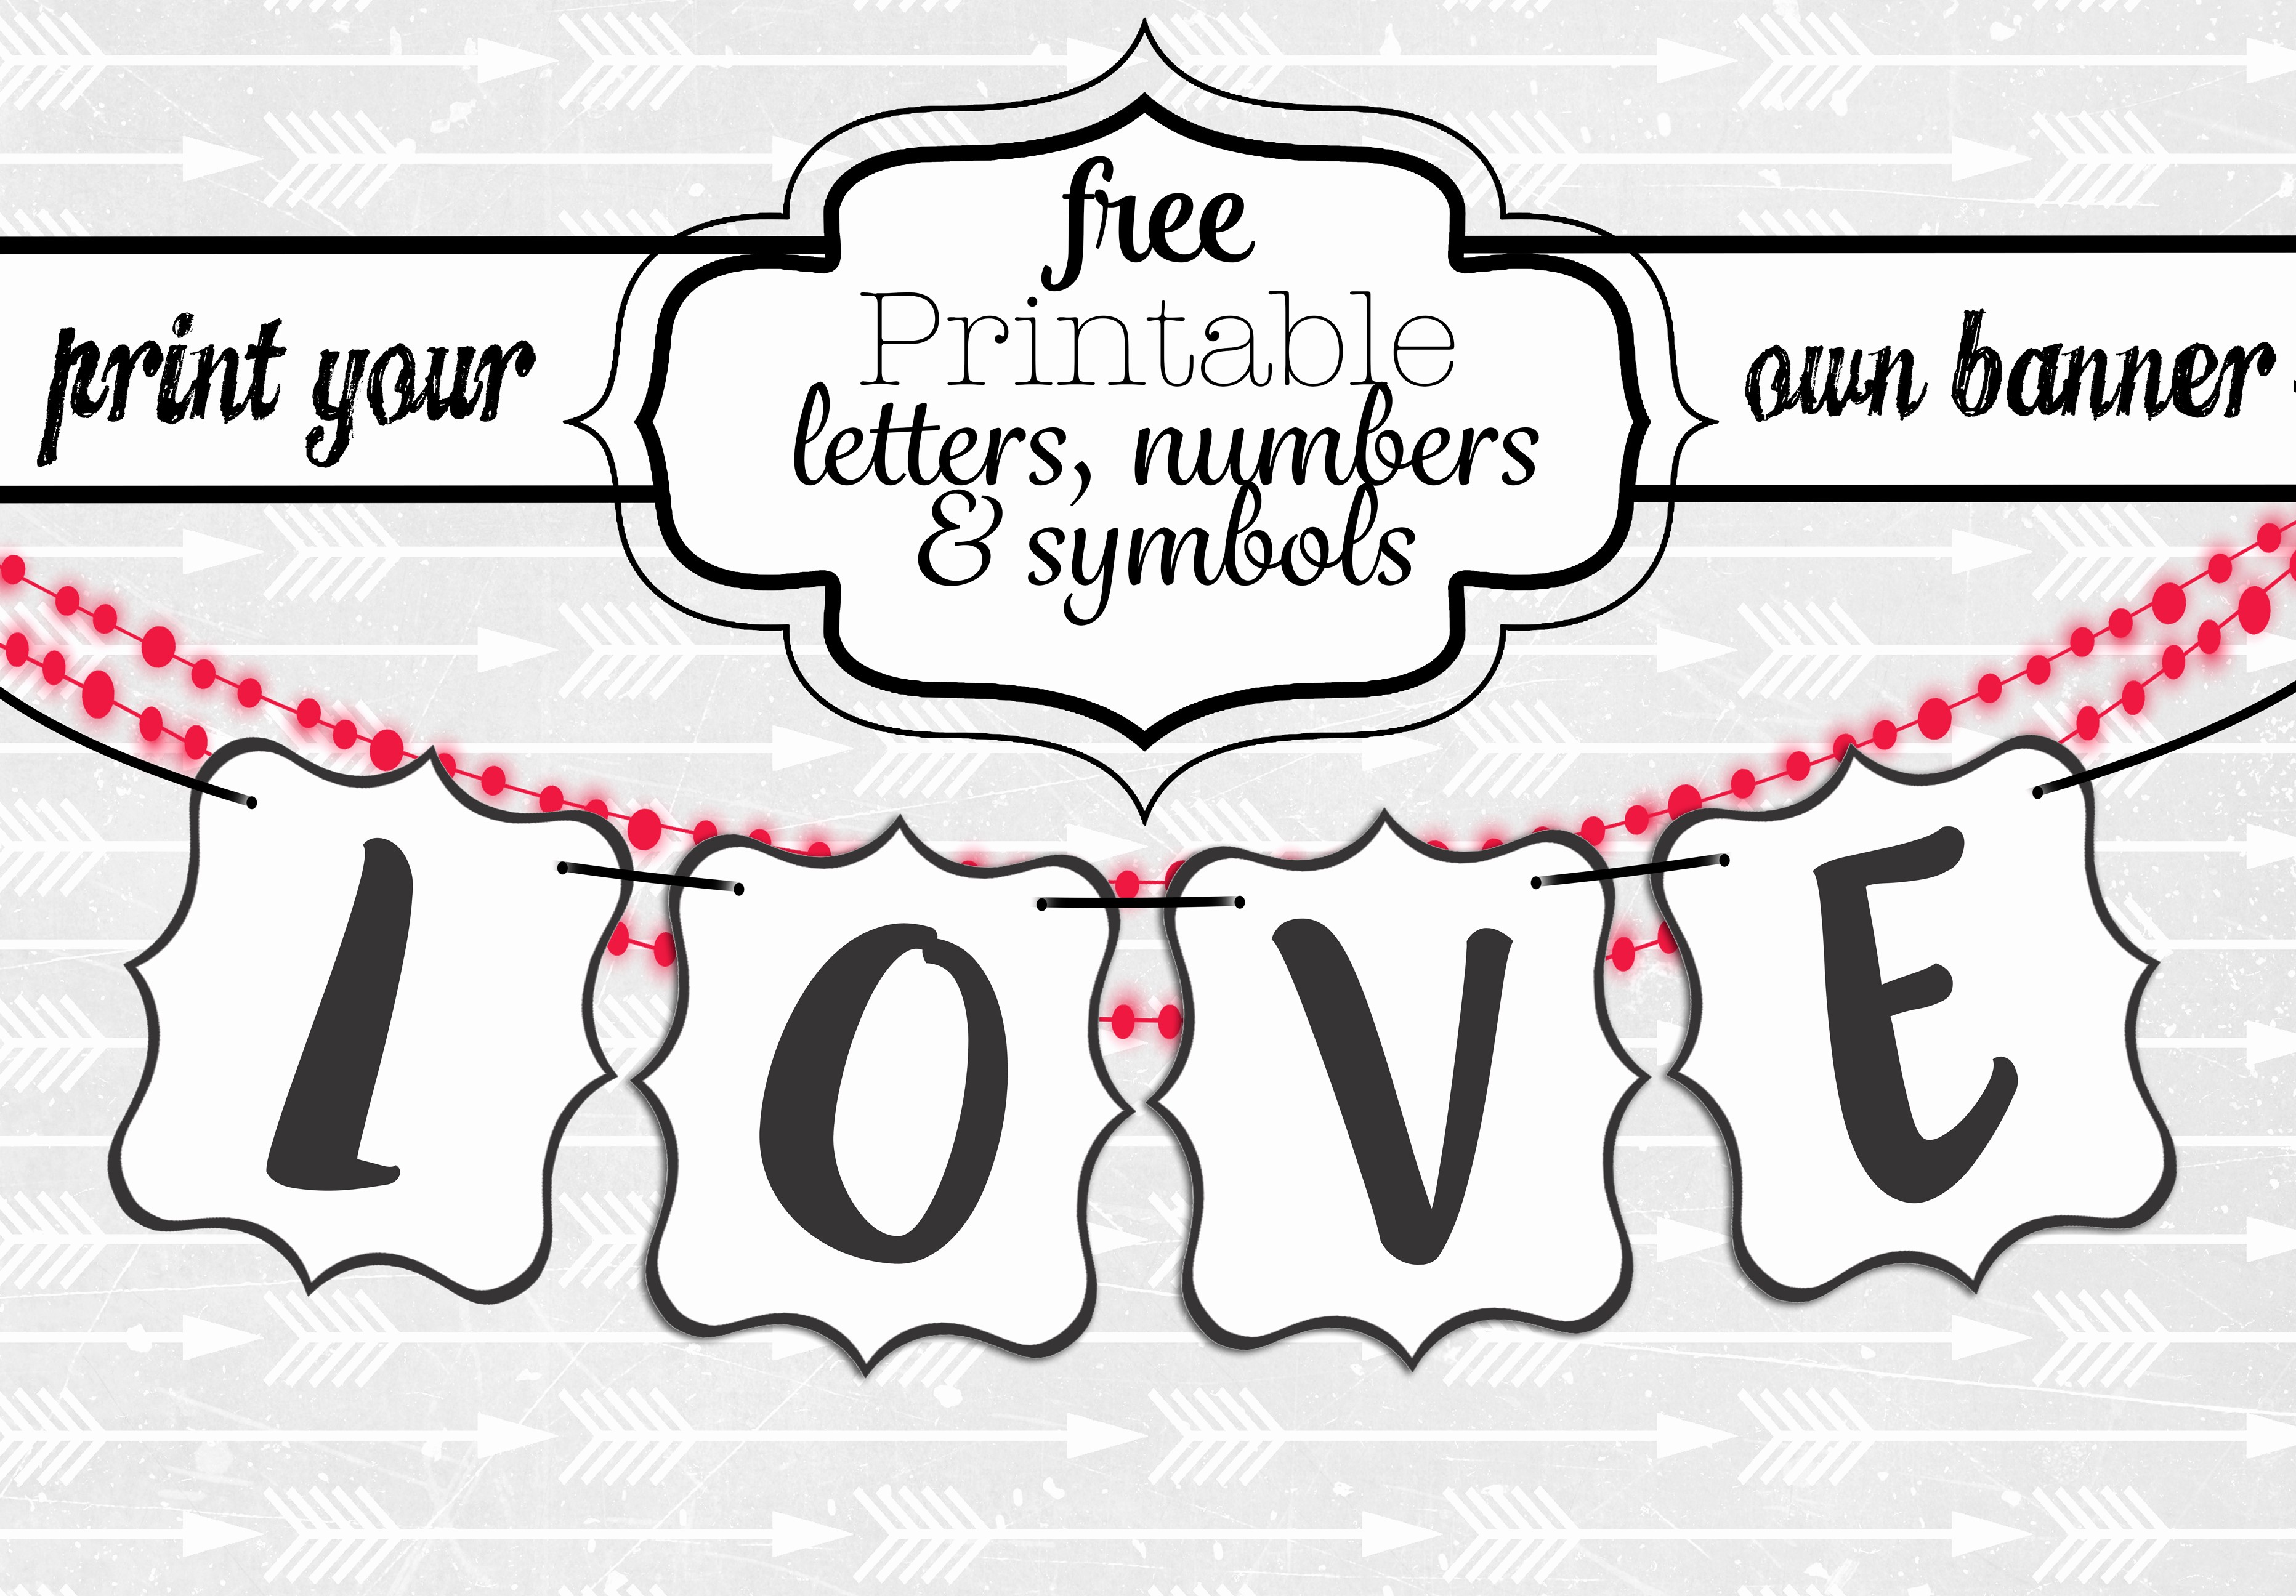 How to Make Banner Letters Lovely Free Printable Letters for Banners Entire Alphabet